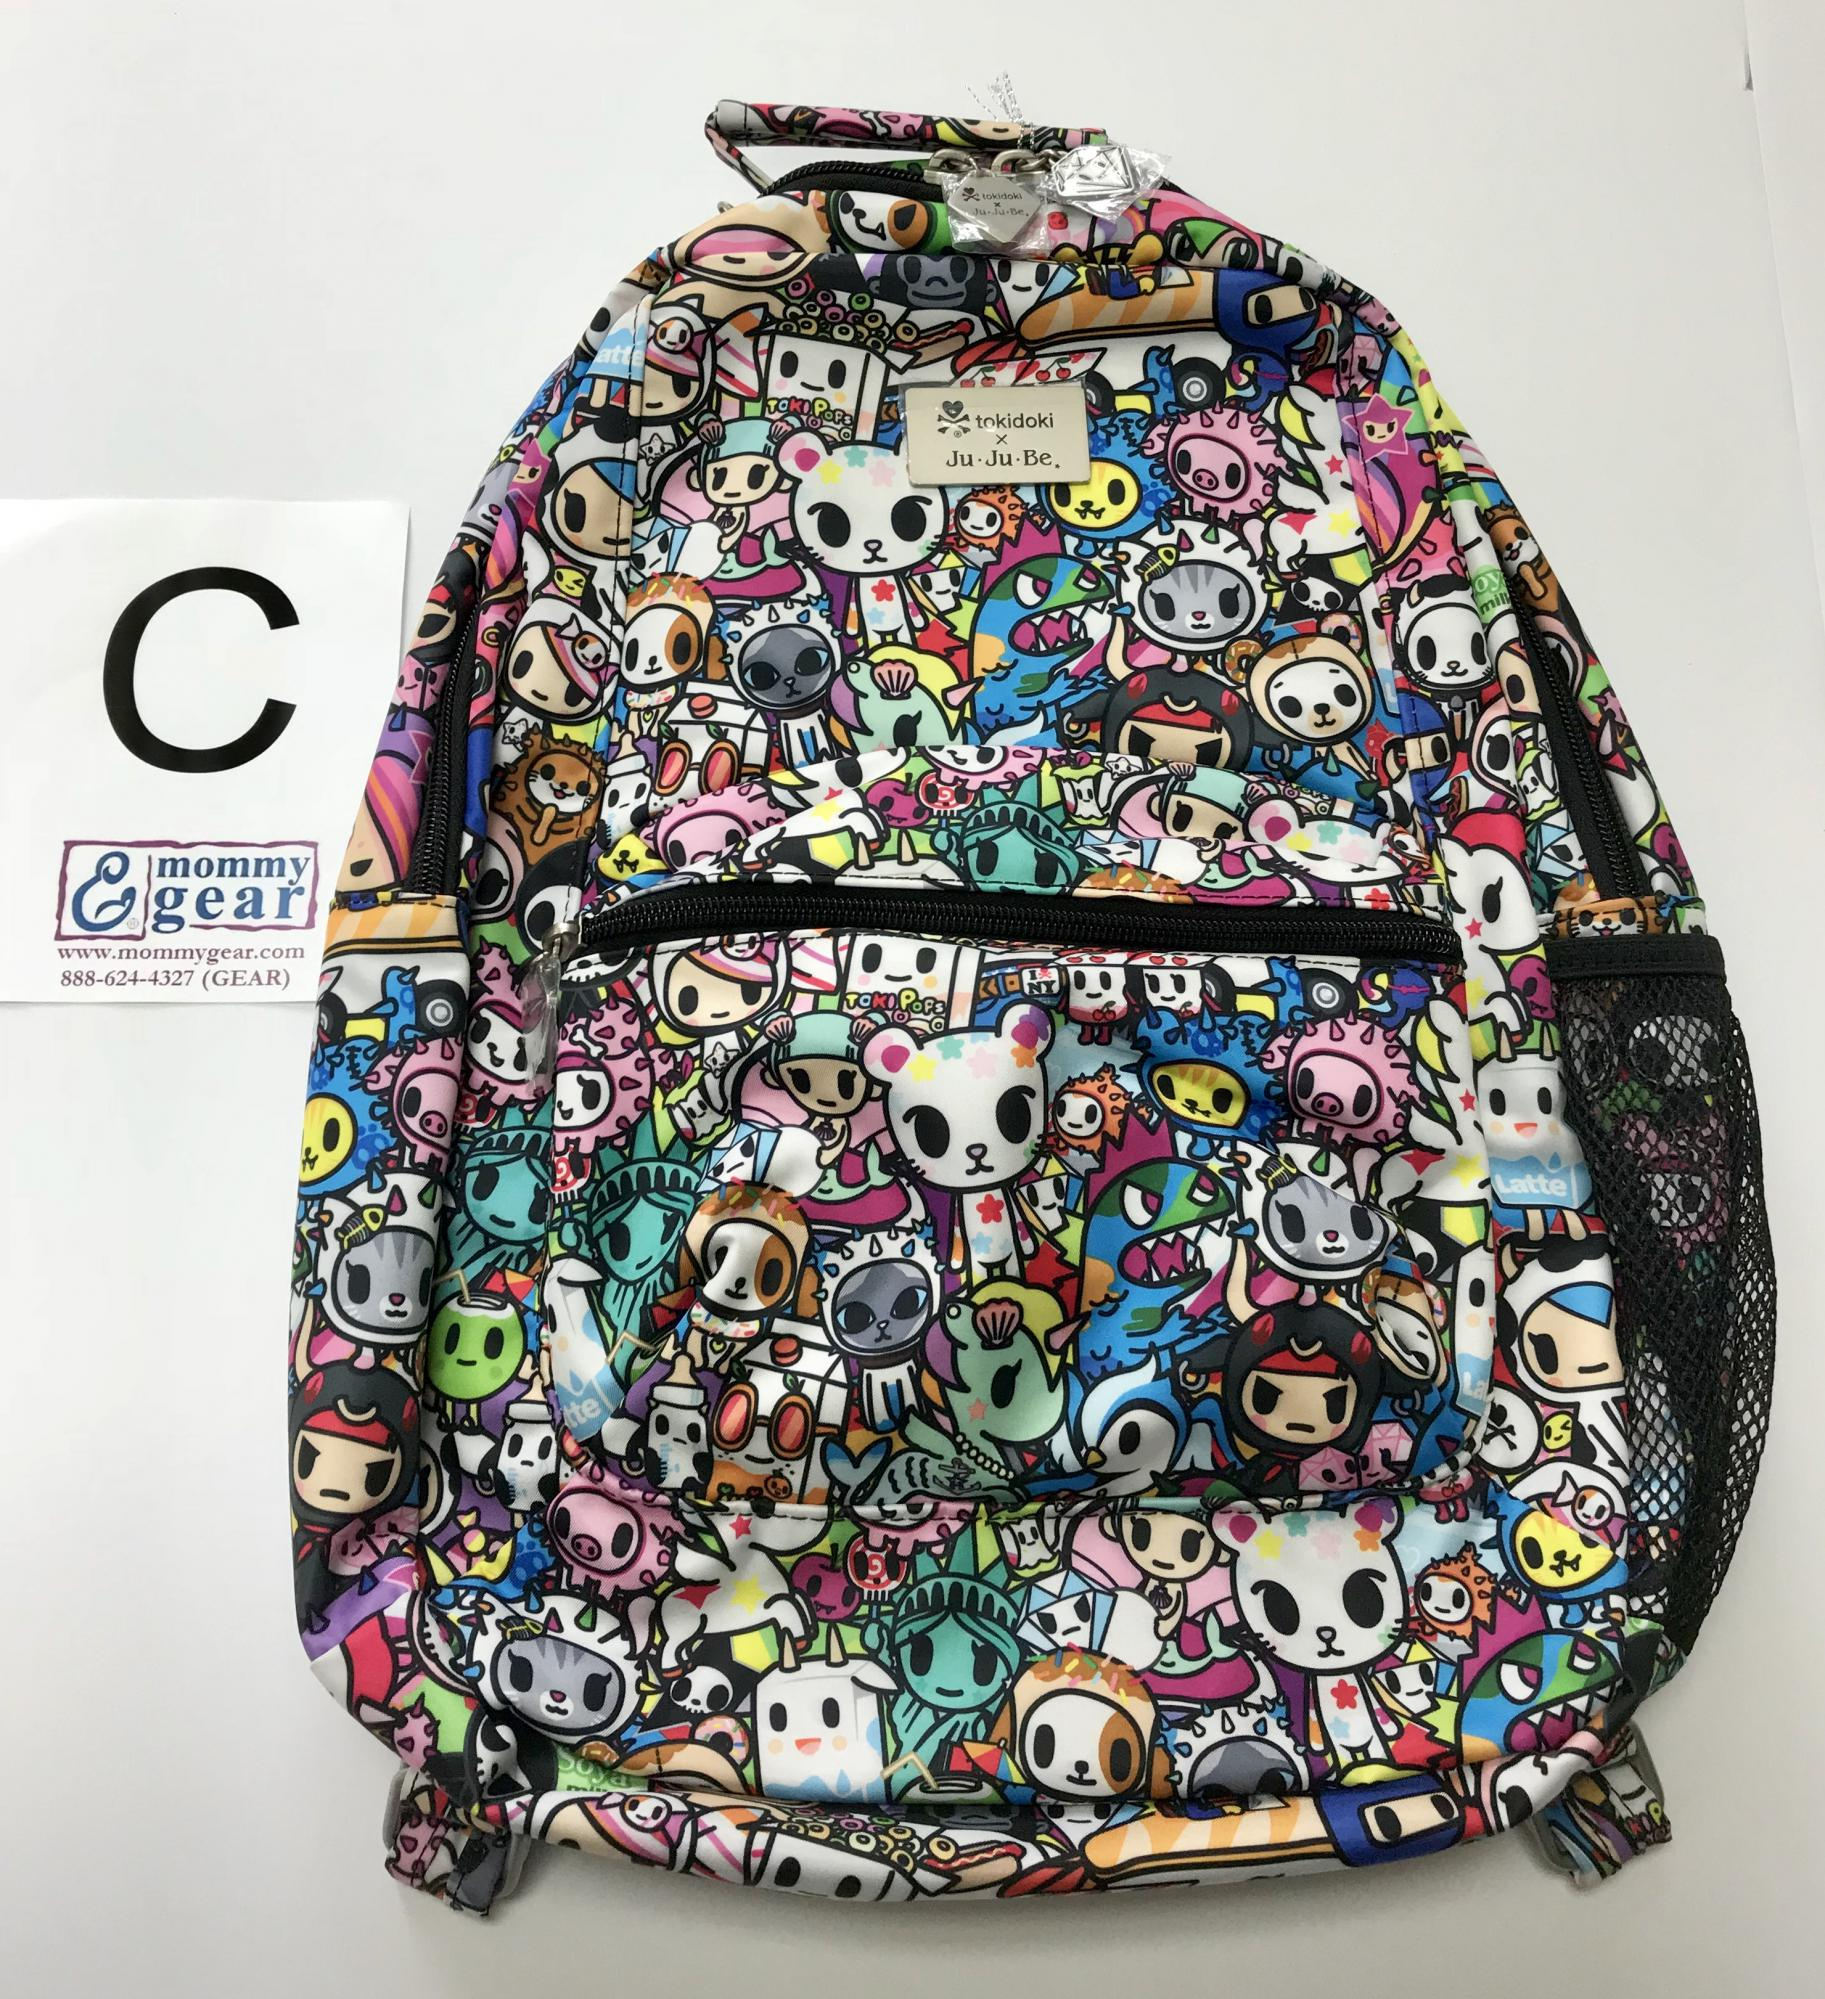 ju-ju-be-tokidoki-iconic-2.0-be-packed-pp-c.jpg